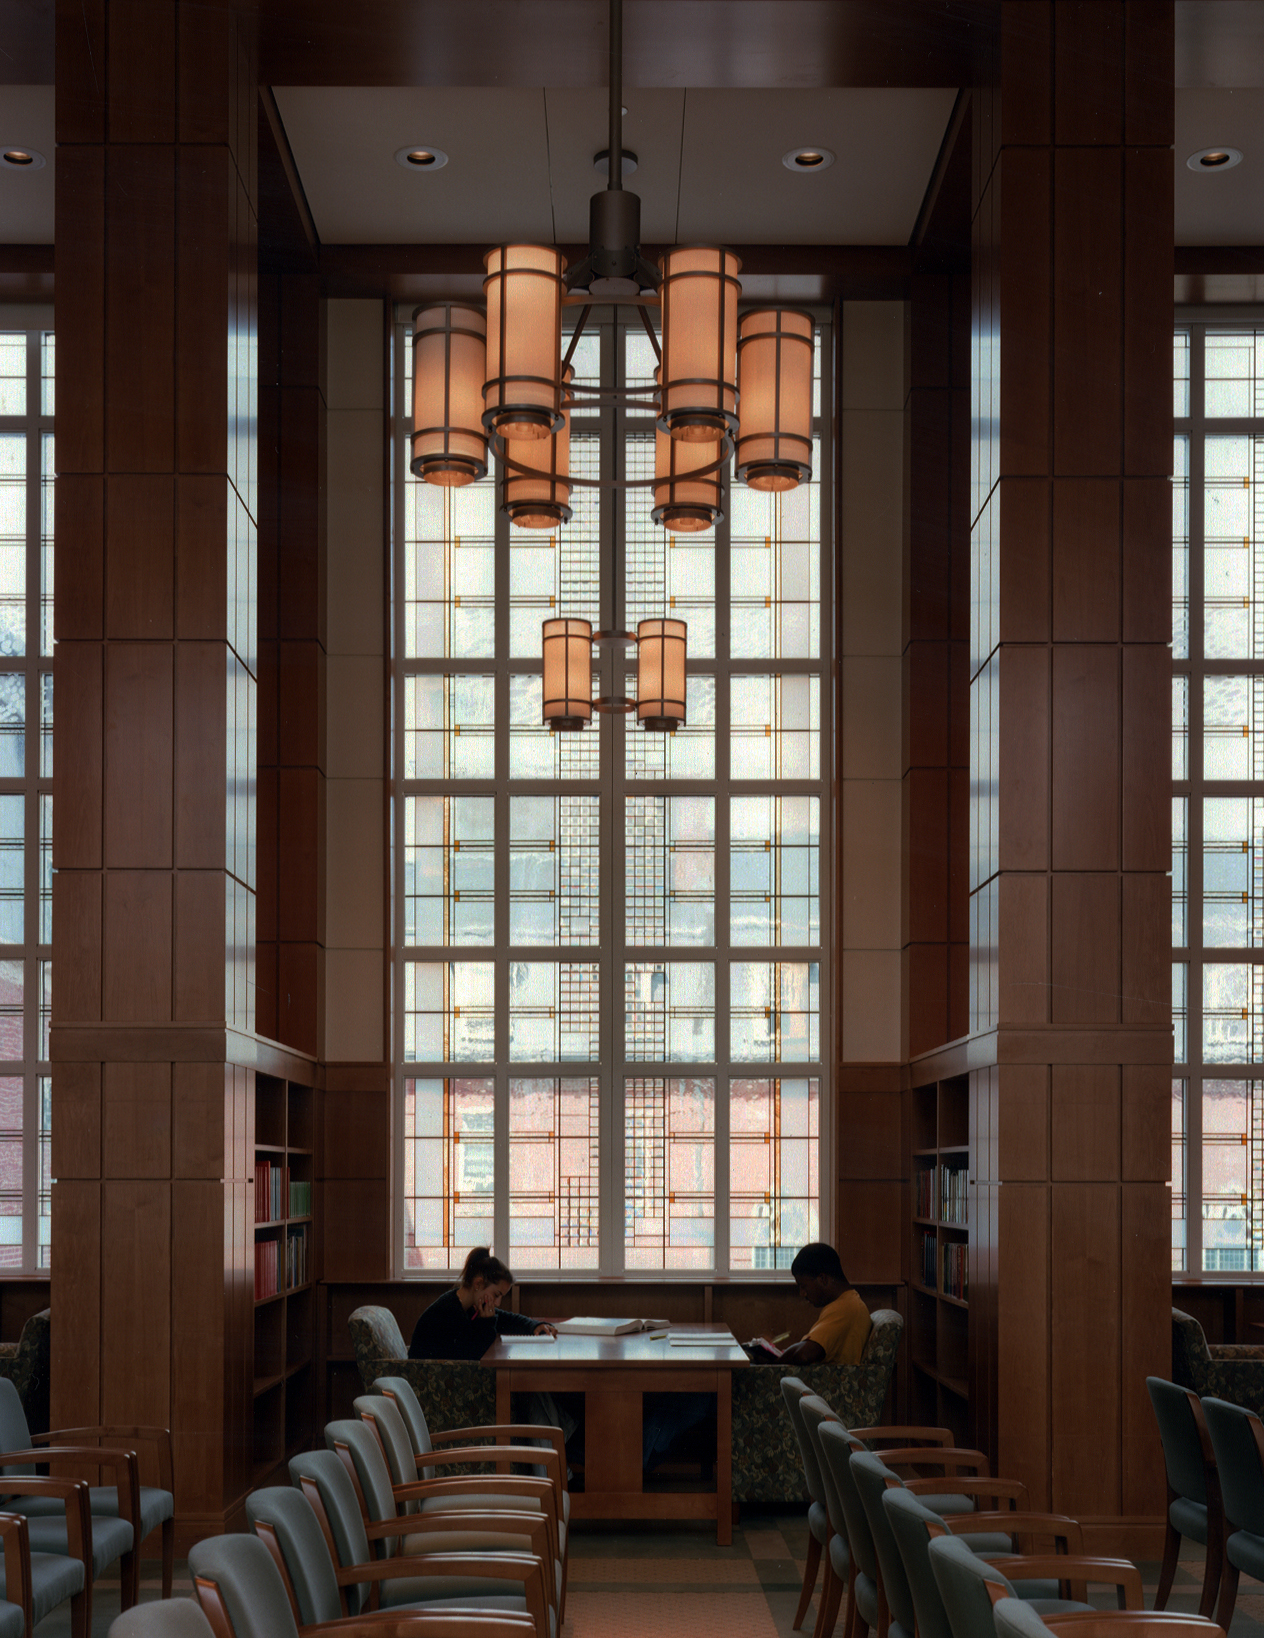 Rehm Library, Smith Hall, College of the Holy Cross, Worcester, MA.